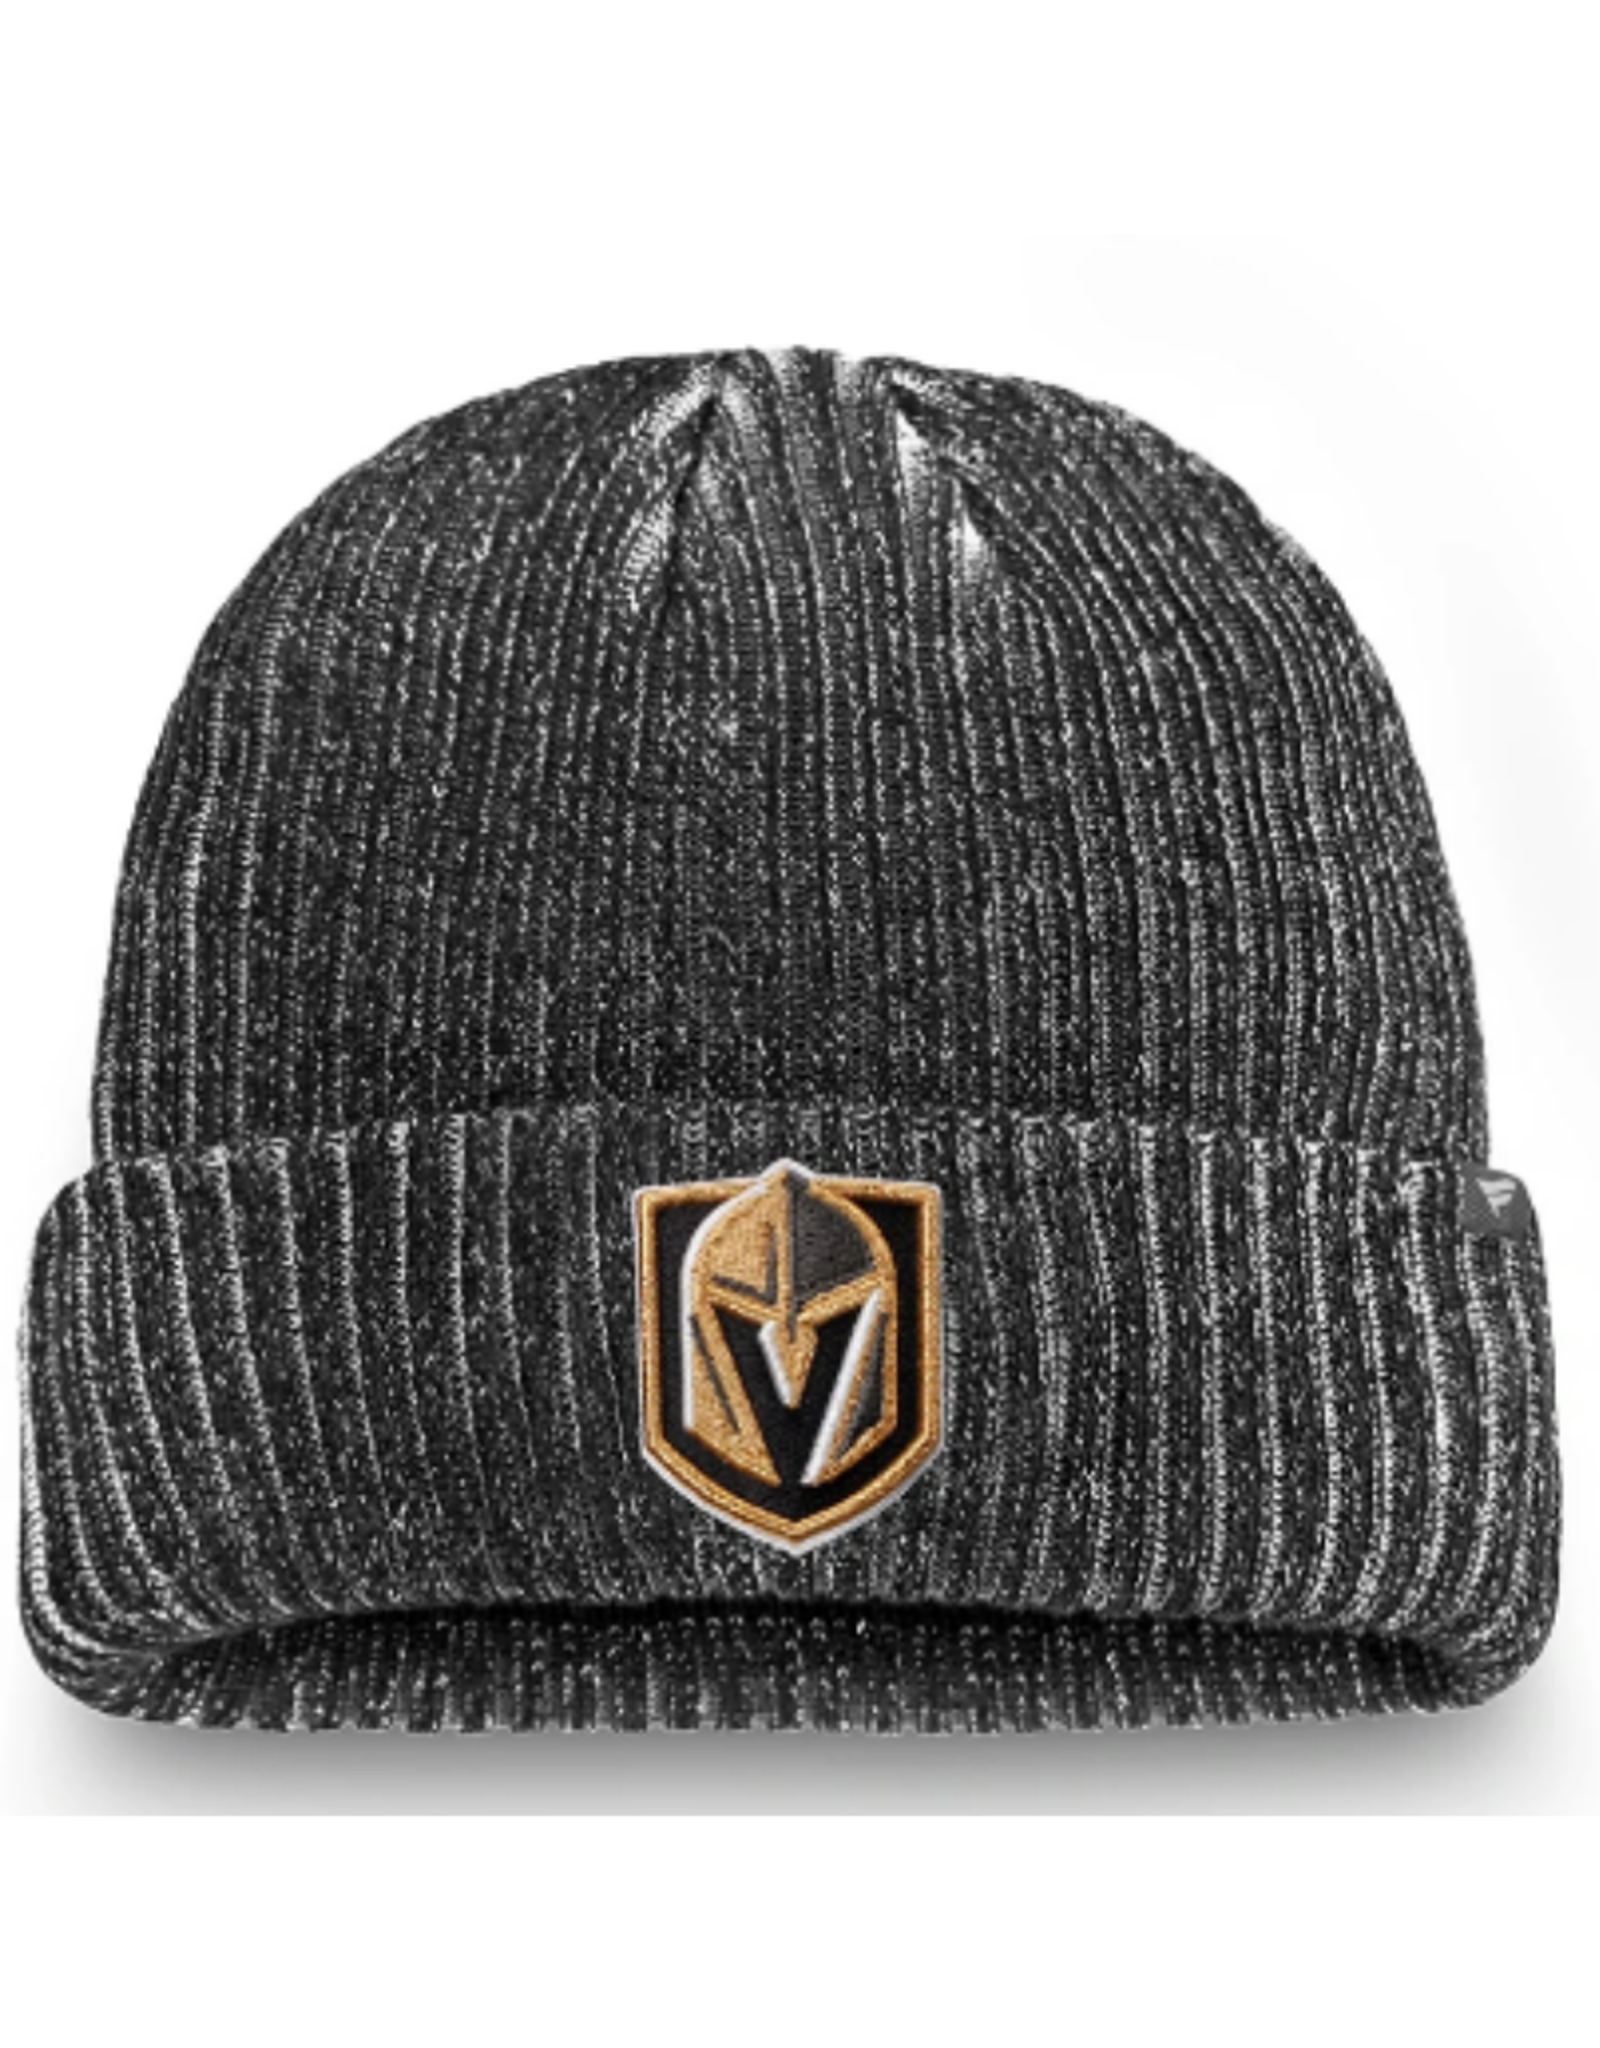 Fanatics Fanatics Adult Rinkside Beanie Cuff Vegas Golden Knights Black